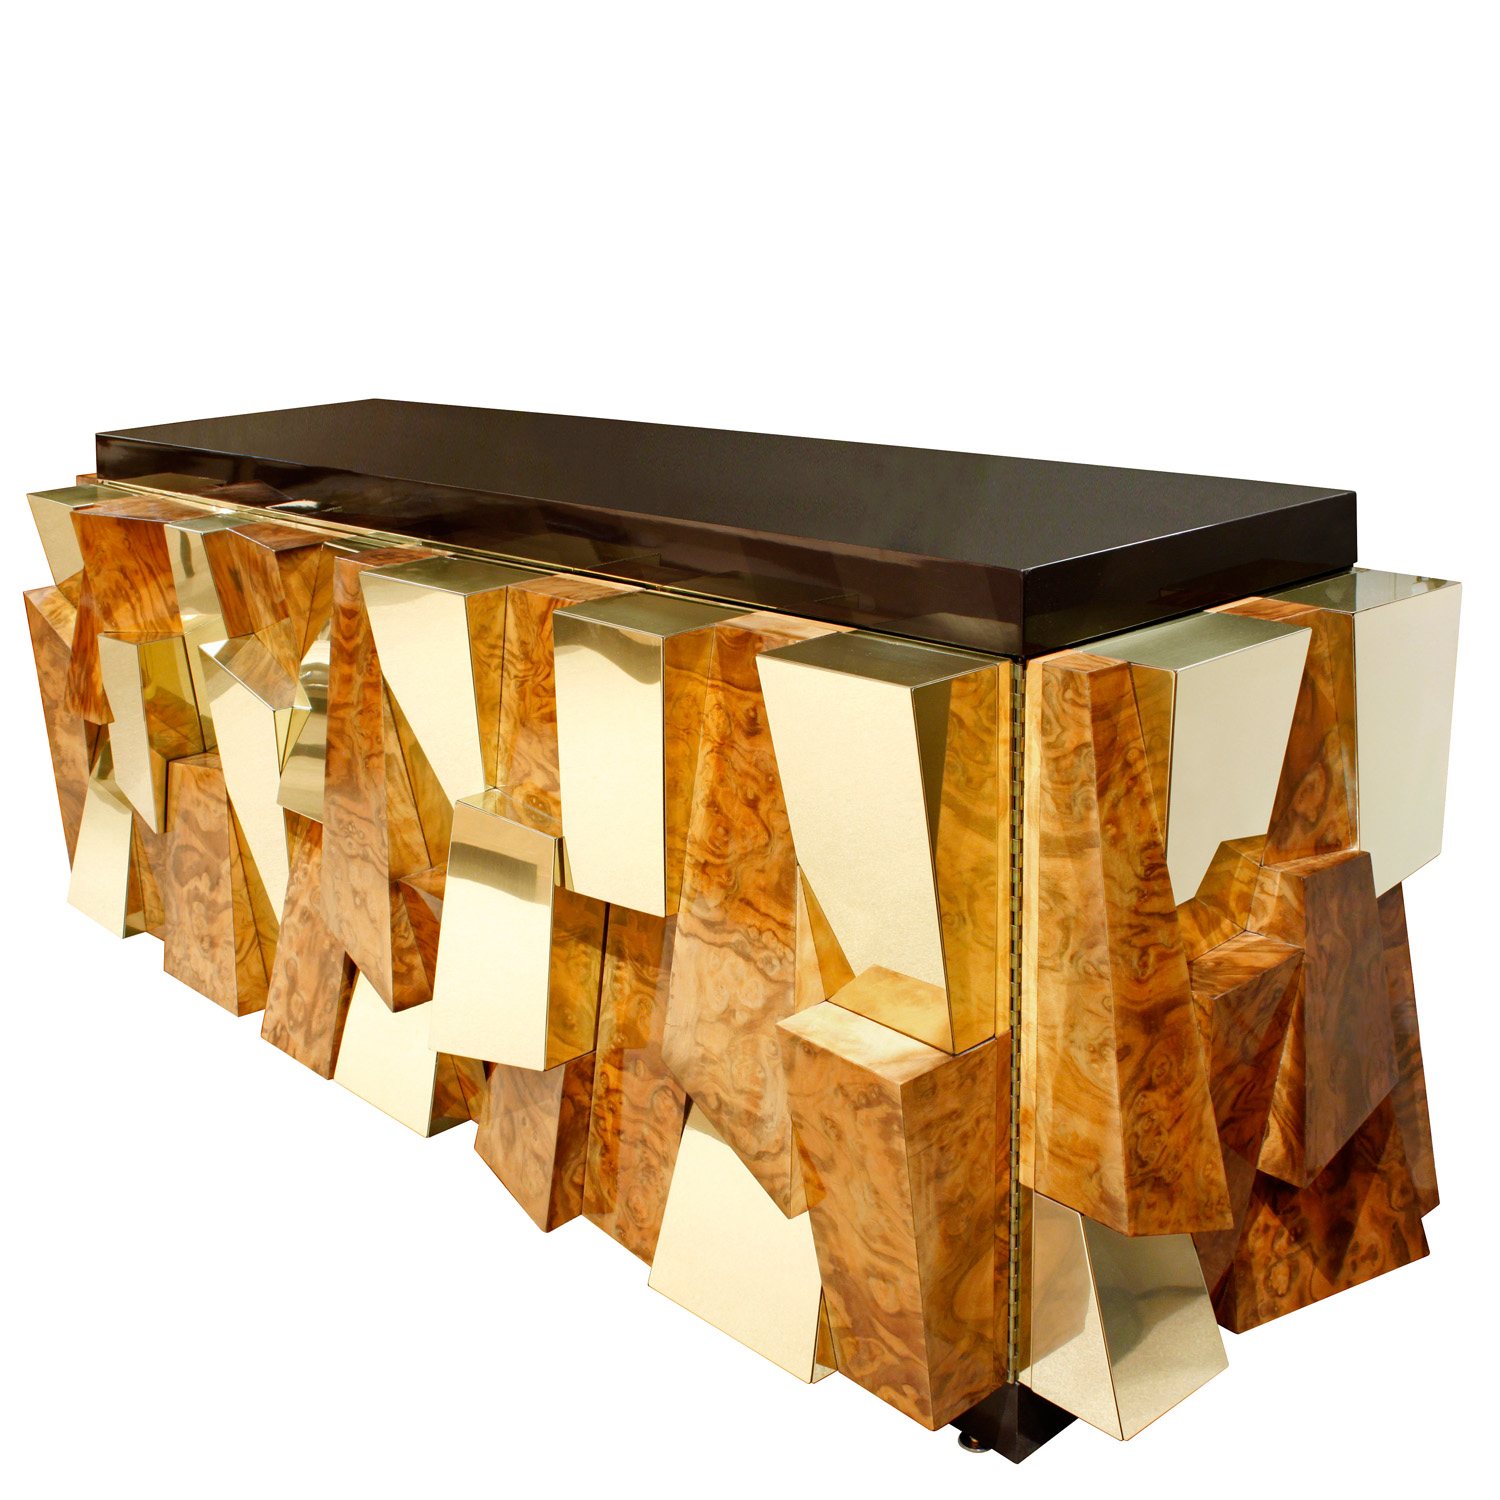 Evans 900 faceted burl+brass credenza61 angle.jpg